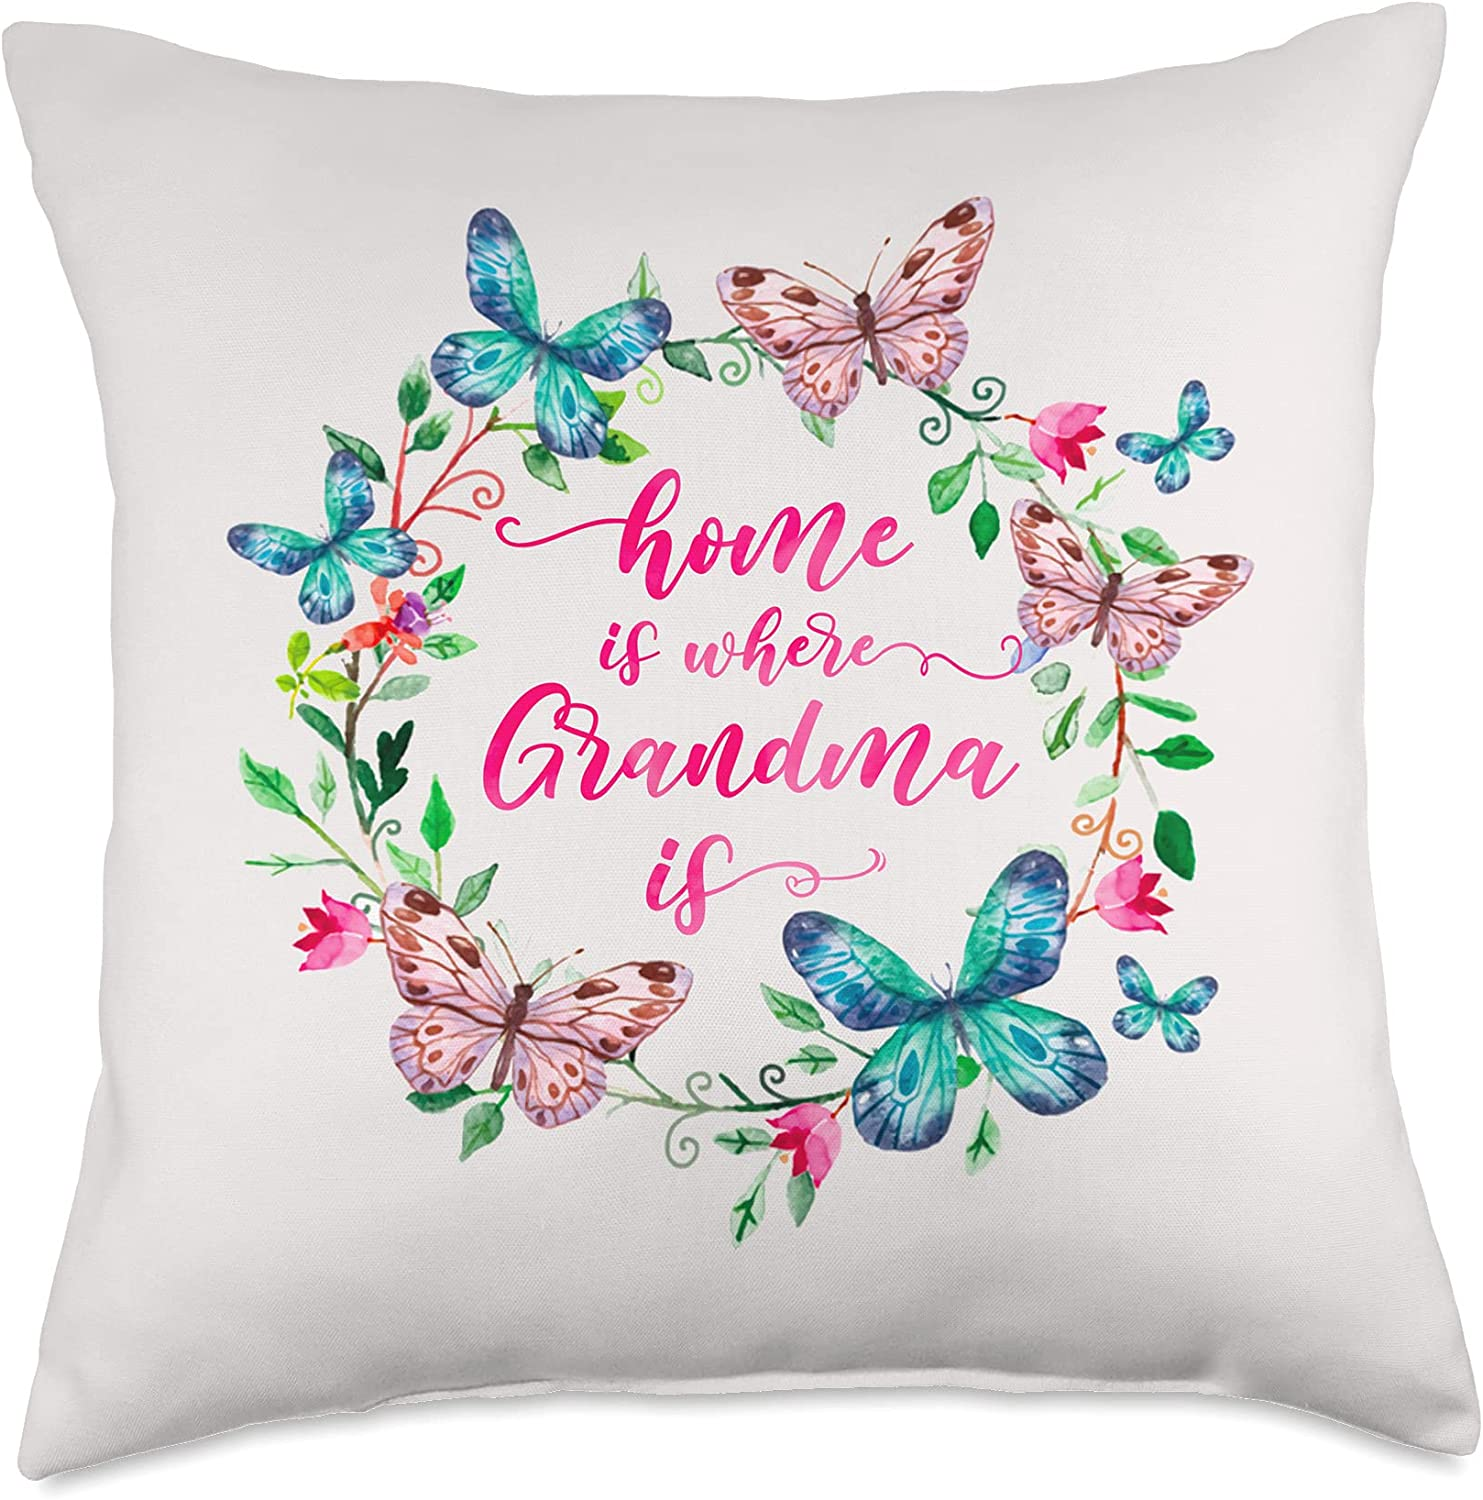 Home Is Where Grandma G famous Day Butterfly 2021 Mother's